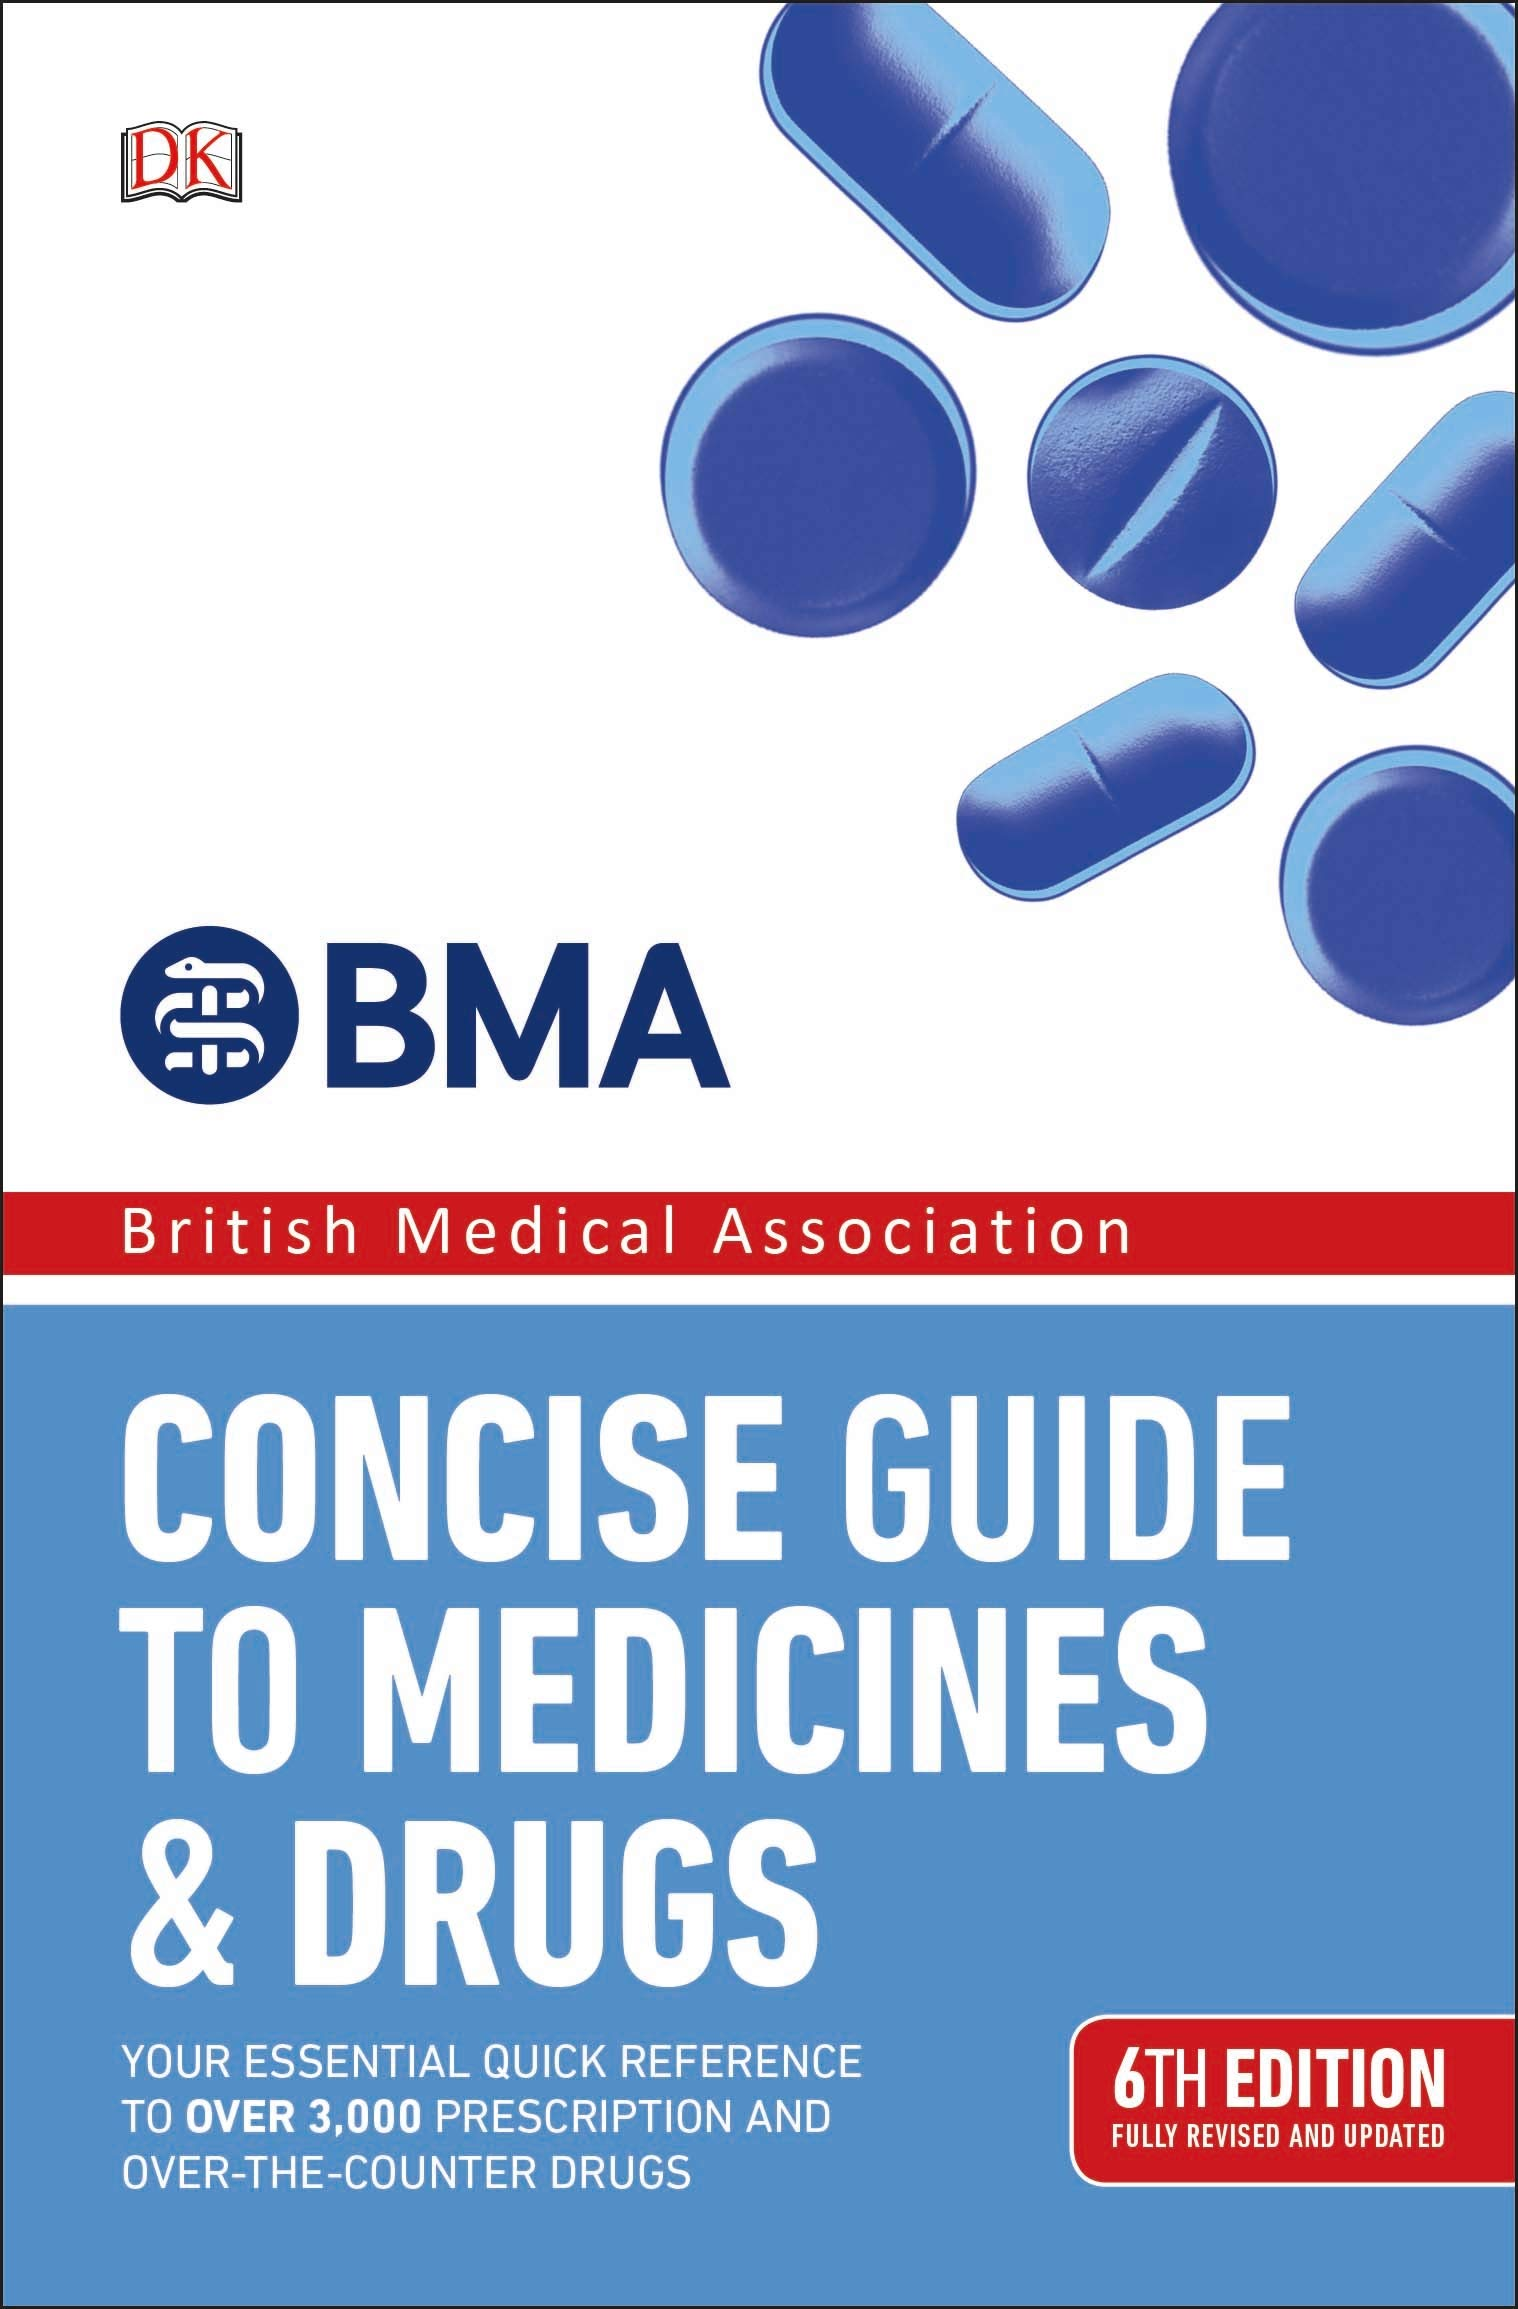 BMA Concise Guide to Medicine and Drugs (6th Edition)